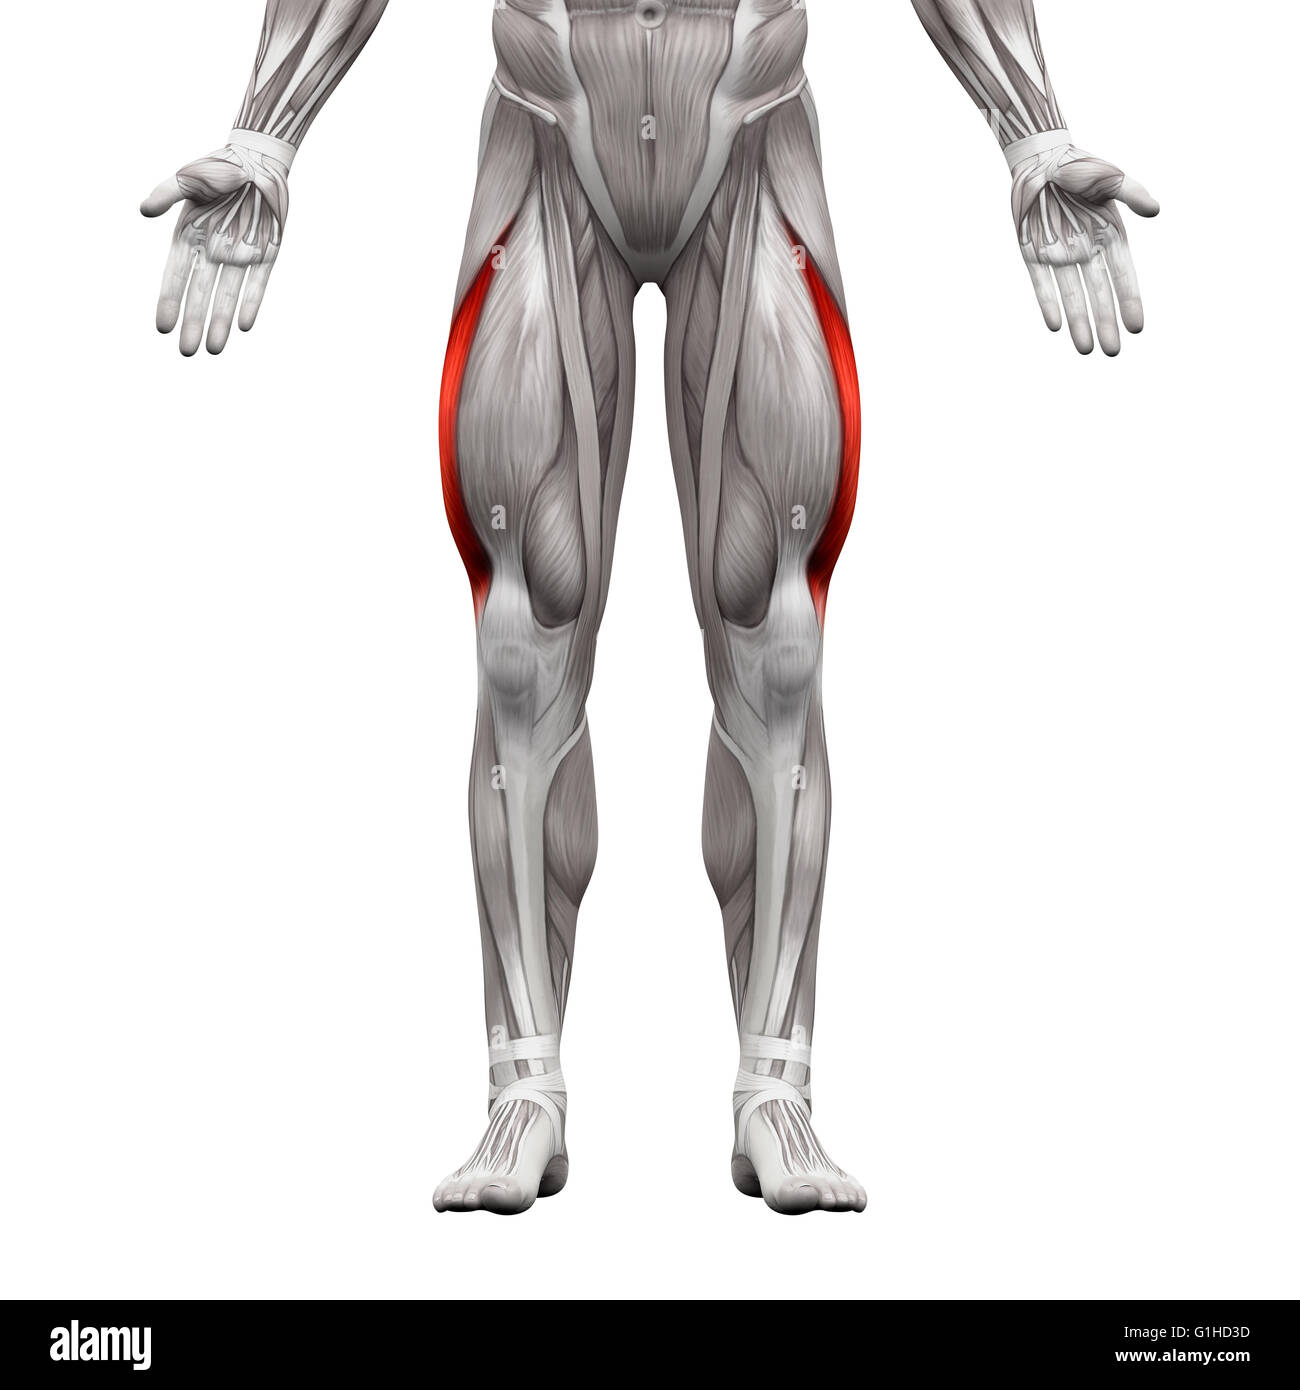 Vastus Lateralis Muscle Anatomy Muscles Isolated On White 3d